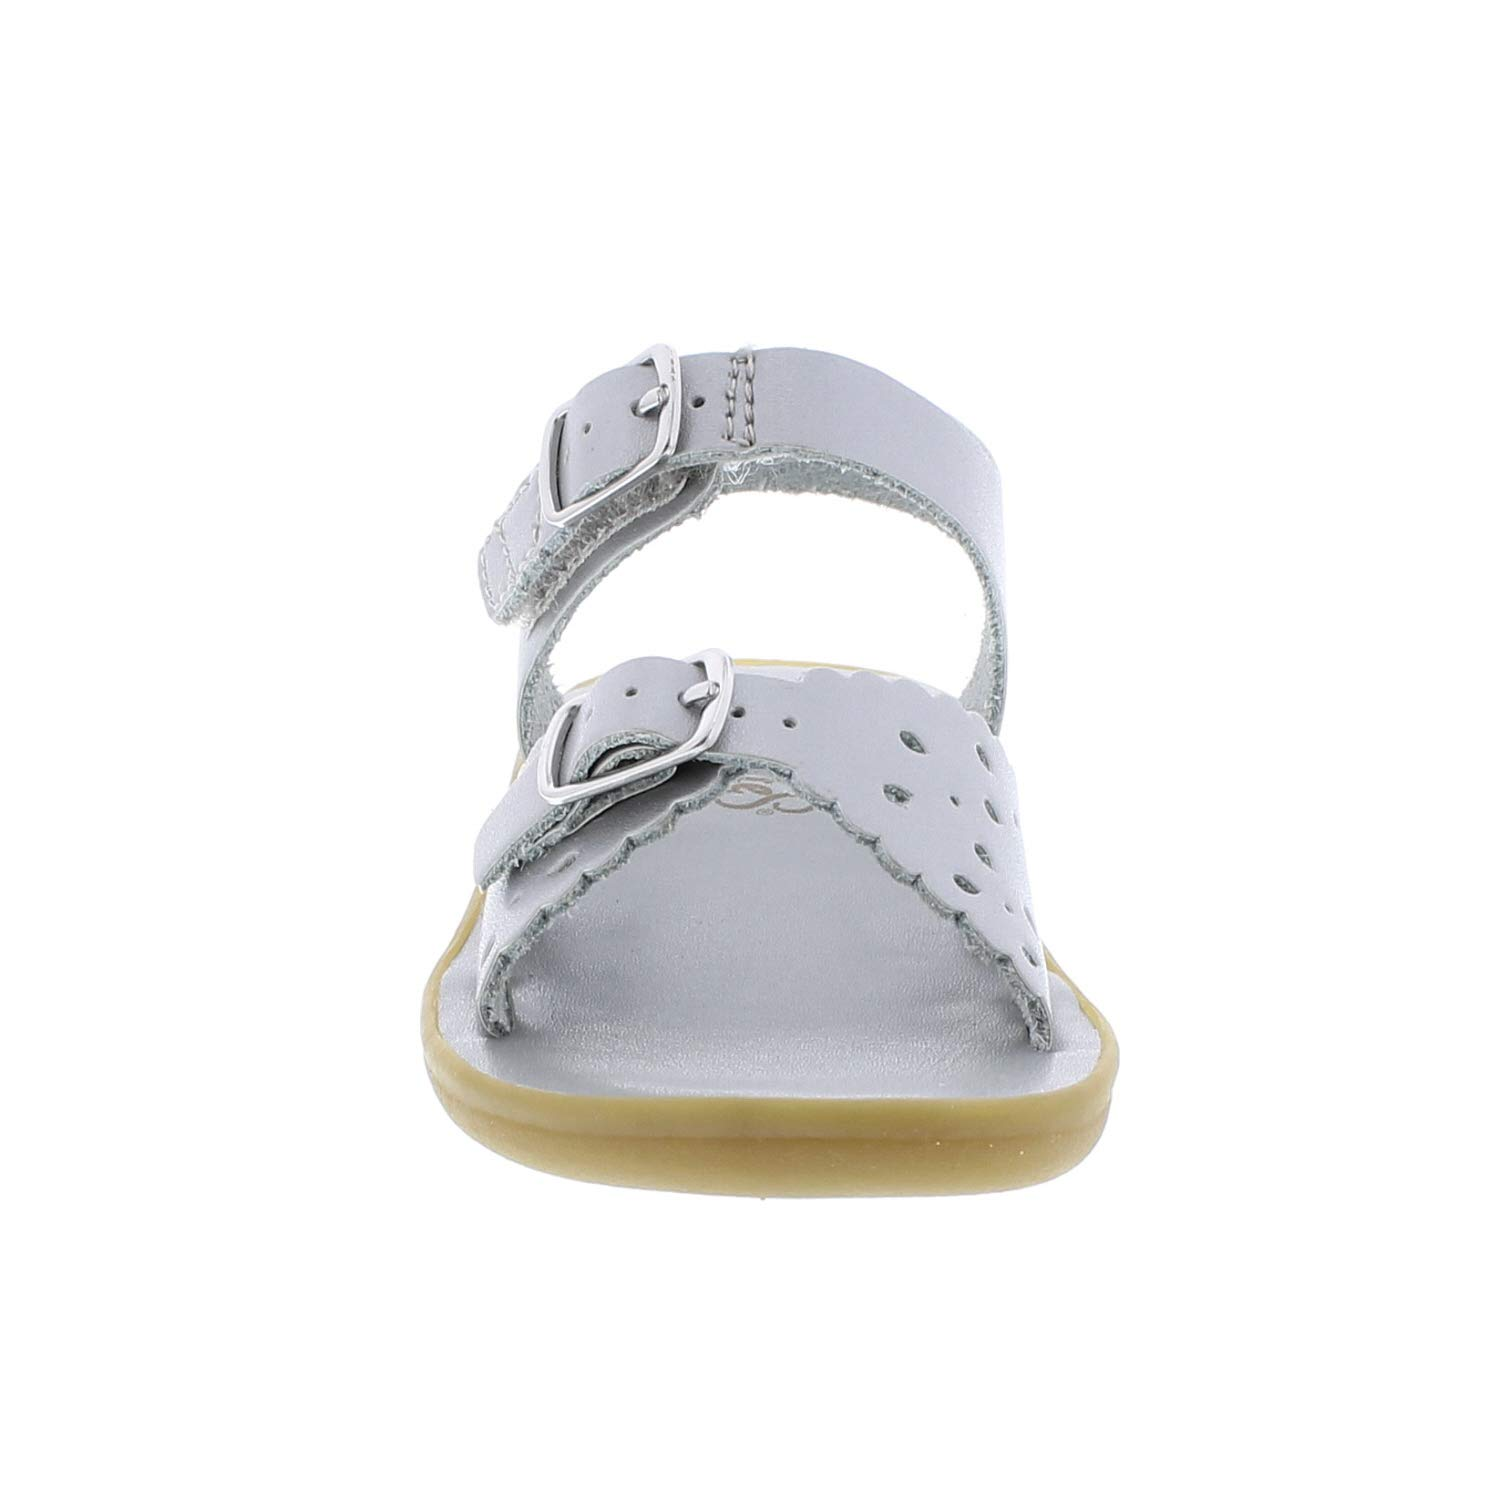 1107 FOOT MATES Girls Ariel Hook-and-Loop and Buckle Perf Sandal Silver